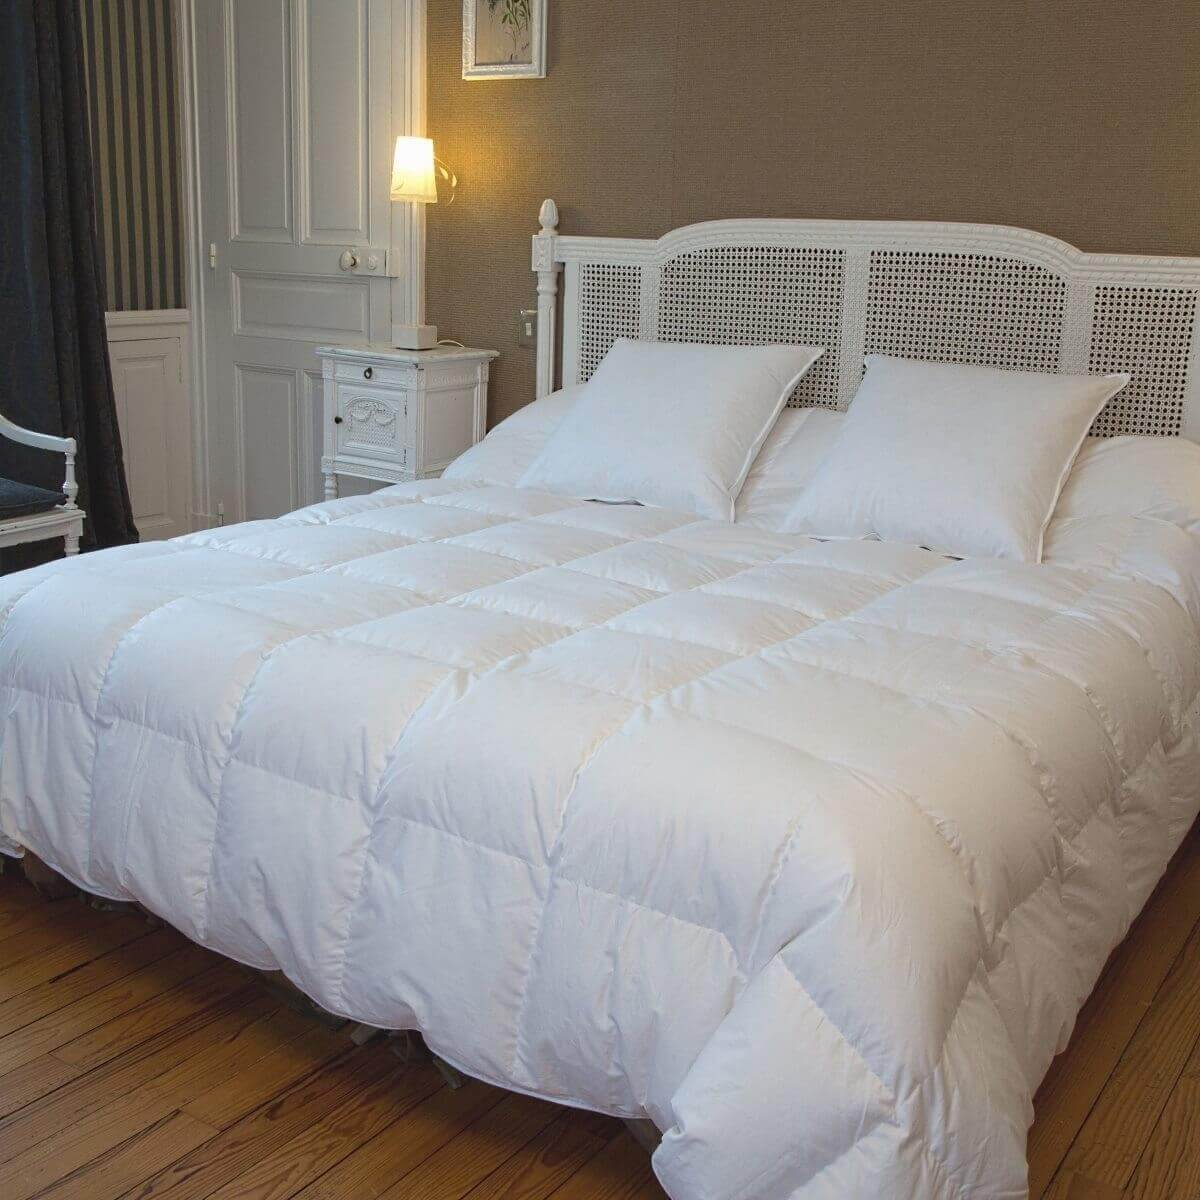 couette grande taille duvet d 39 oie chaude castex couettes naturelles. Black Bedroom Furniture Sets. Home Design Ideas